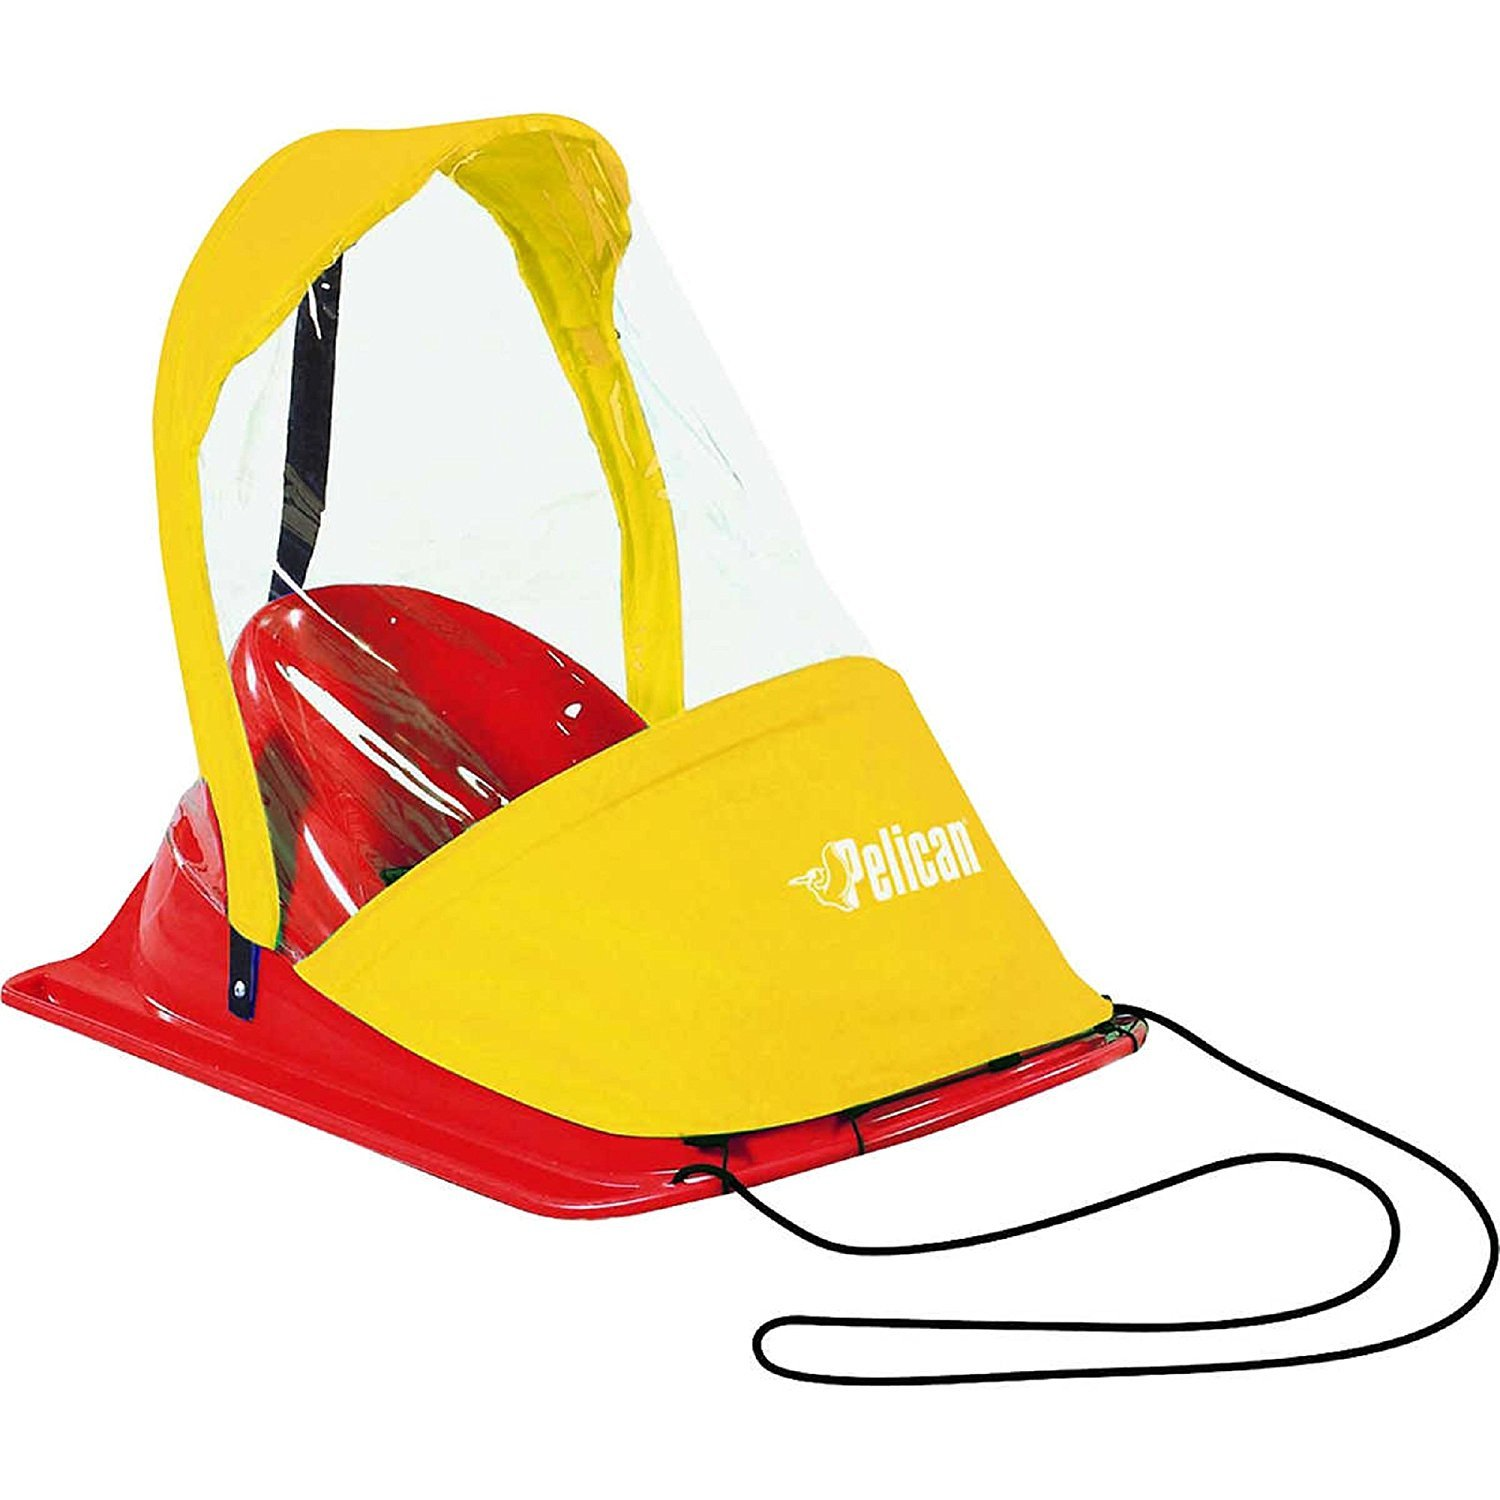 Pelican / Baby Sled Deluxe - Injection Moulded Plastic with HIGH BACKREST / WEATHER SHIELD with Zippered Opening / SAFETY HARNESS with ERGONOMIC SEAT and Pull rope: 0 - 24 months by Pelican